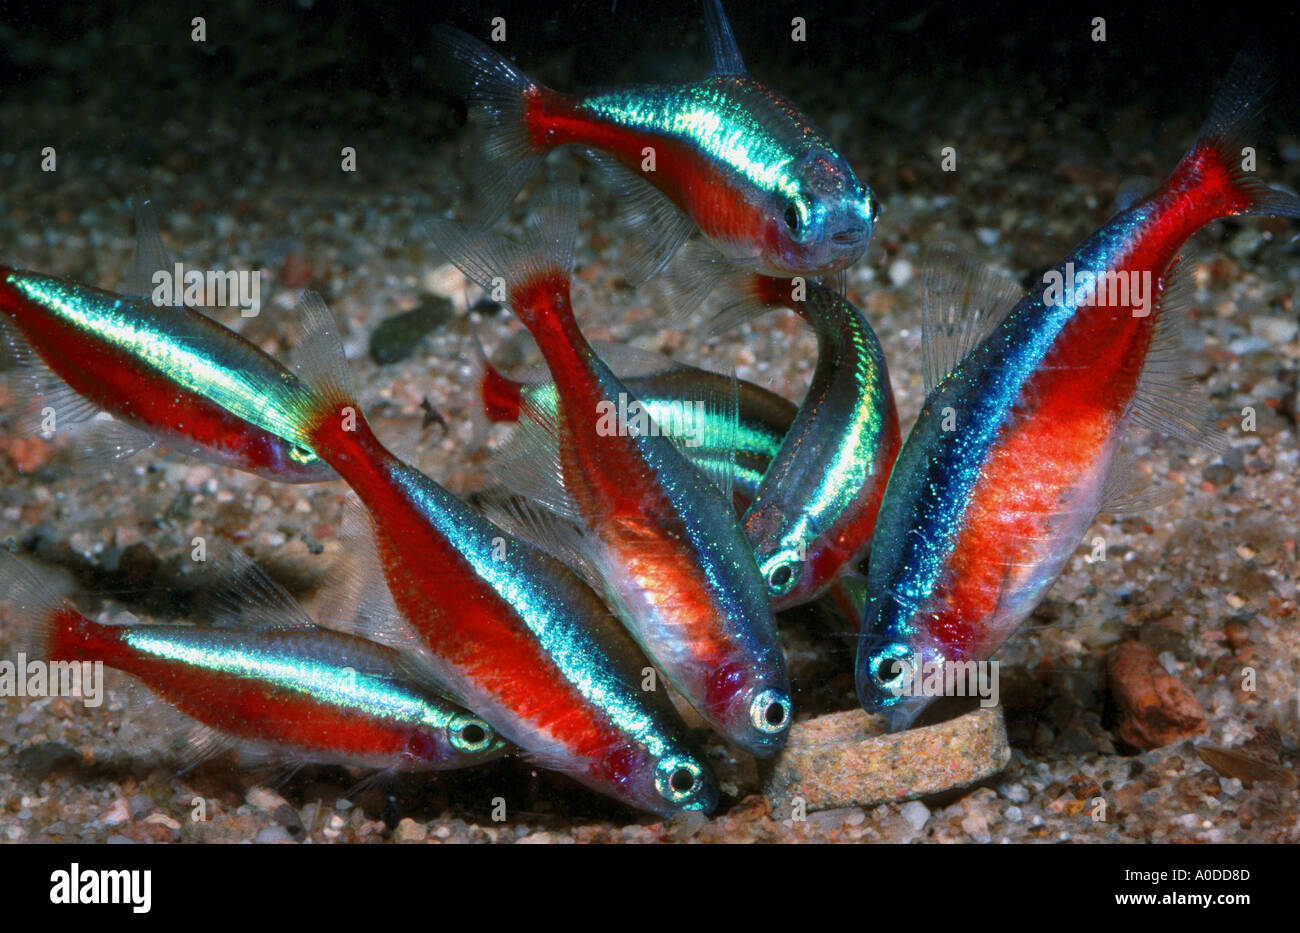 Neon Fish Neon Tetras Cheirodon Axelrodi School Shoal Of Fish Red